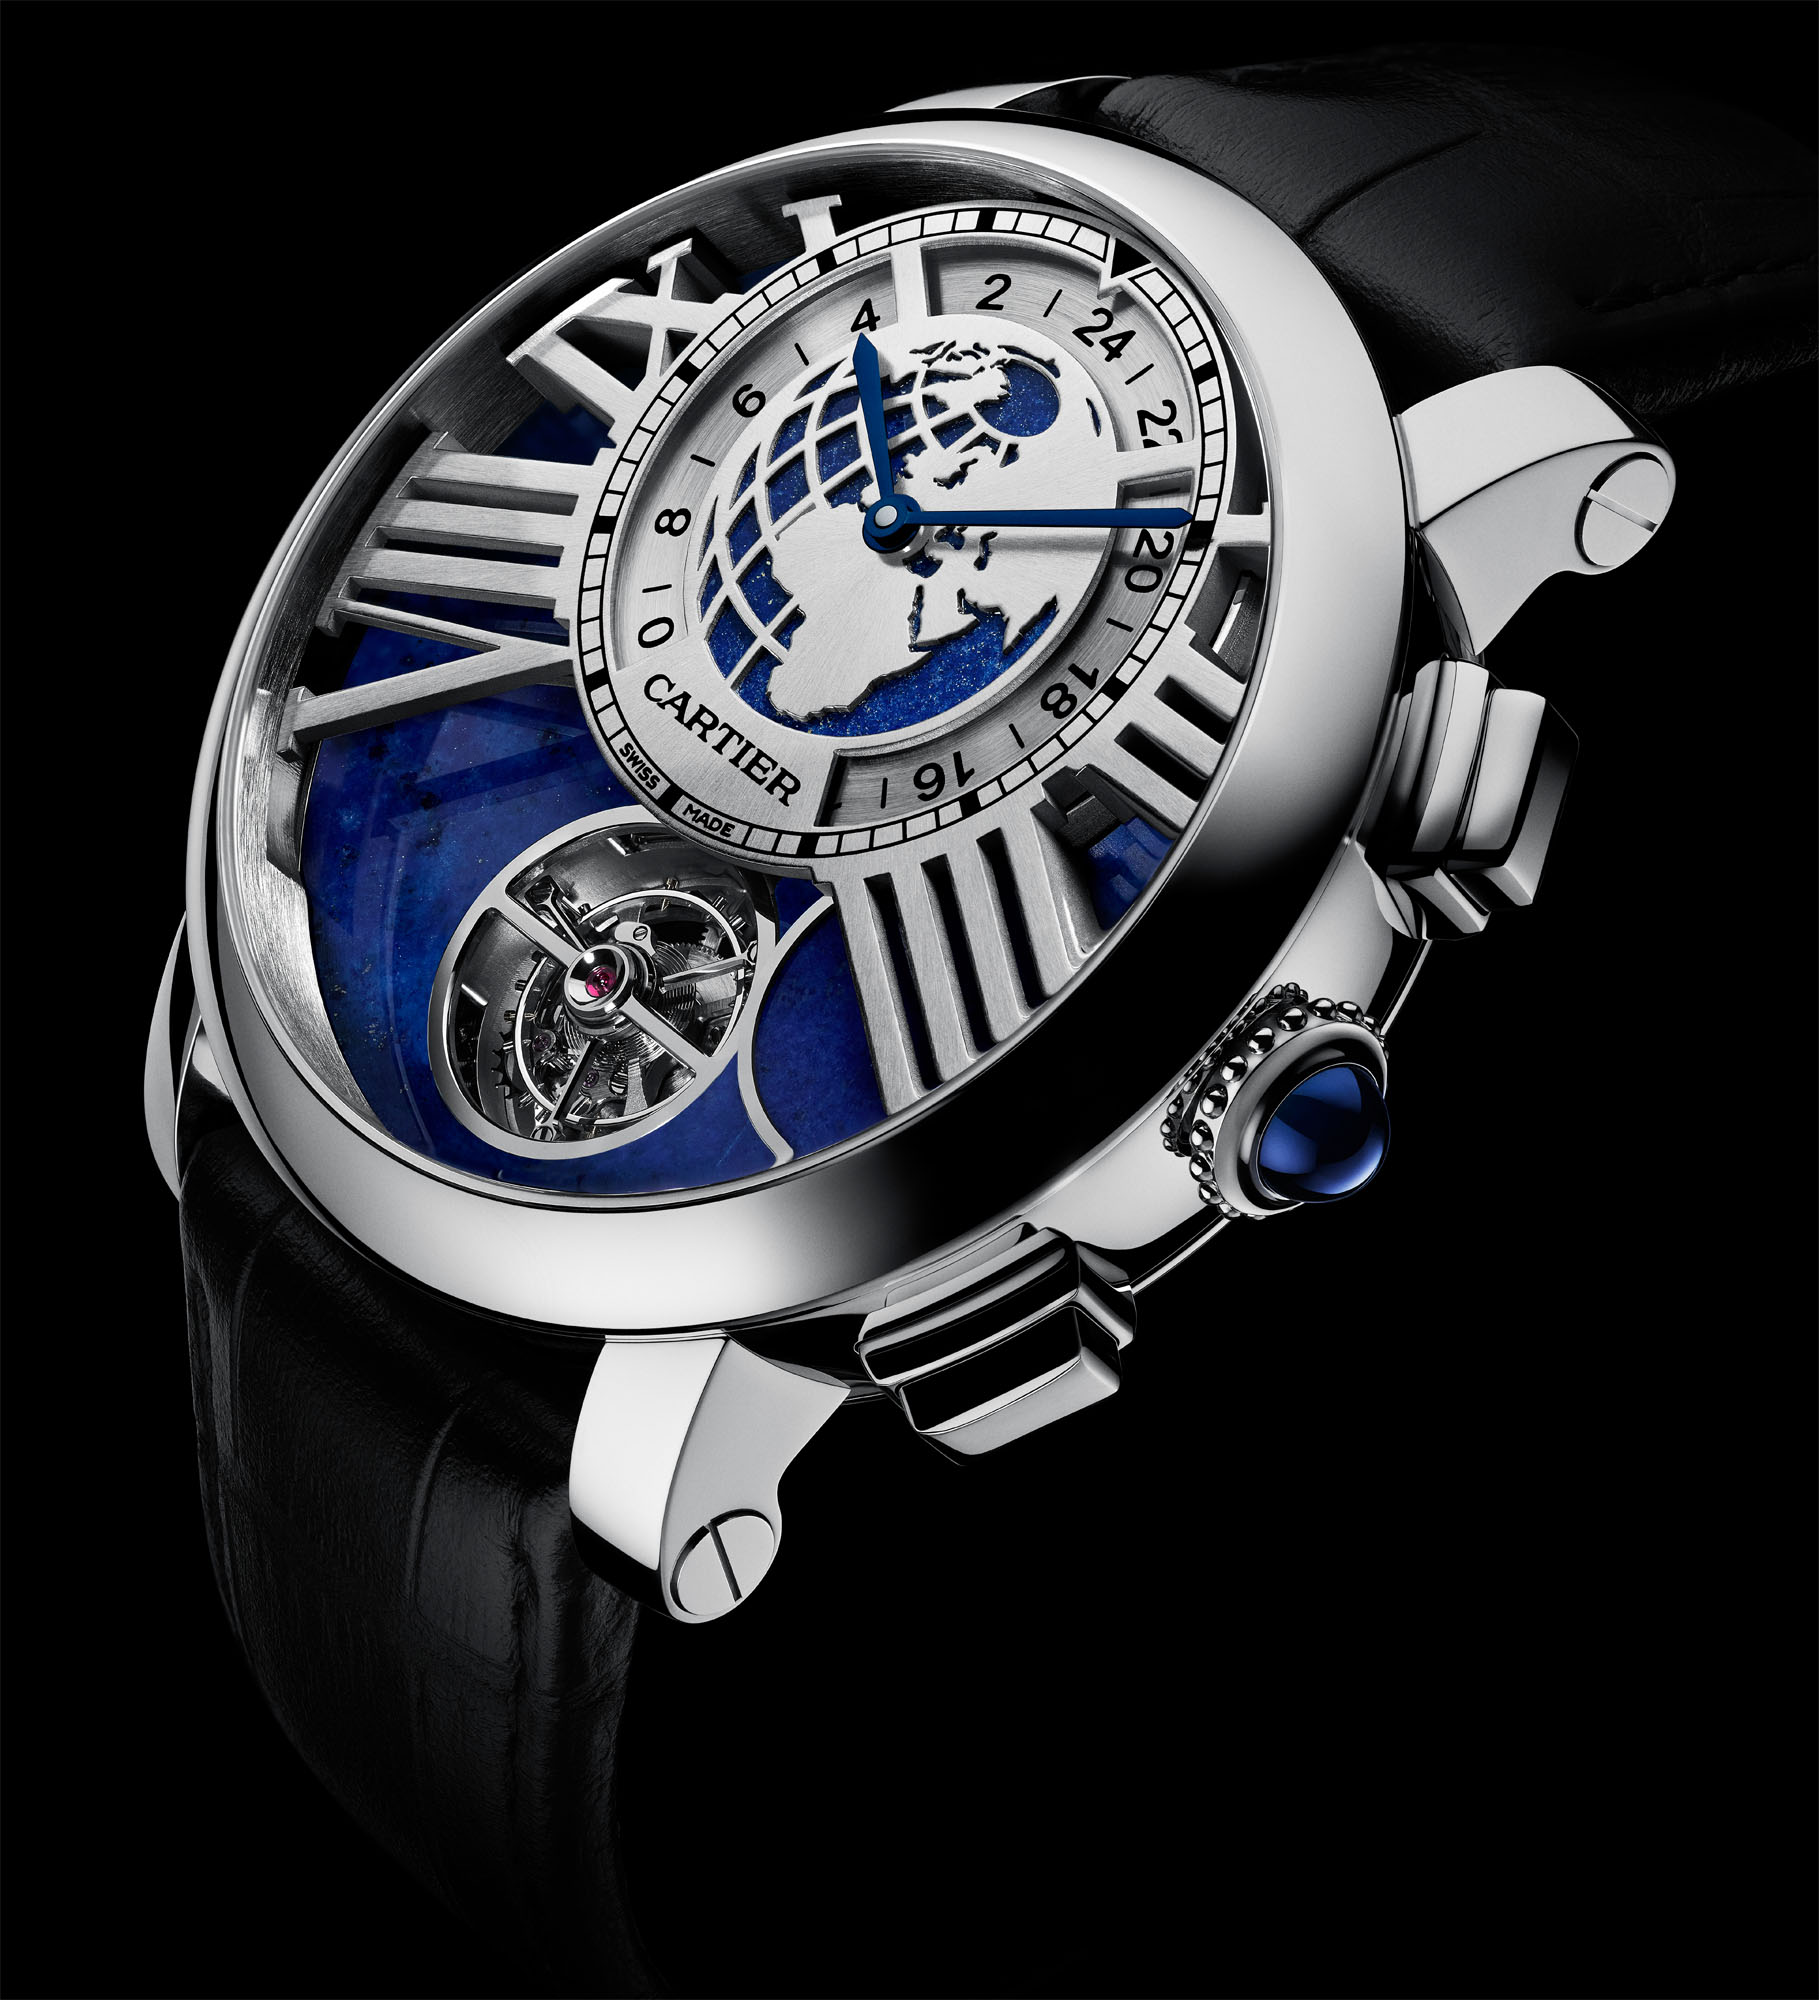 The Rotonde de Cartier Earth & Moon